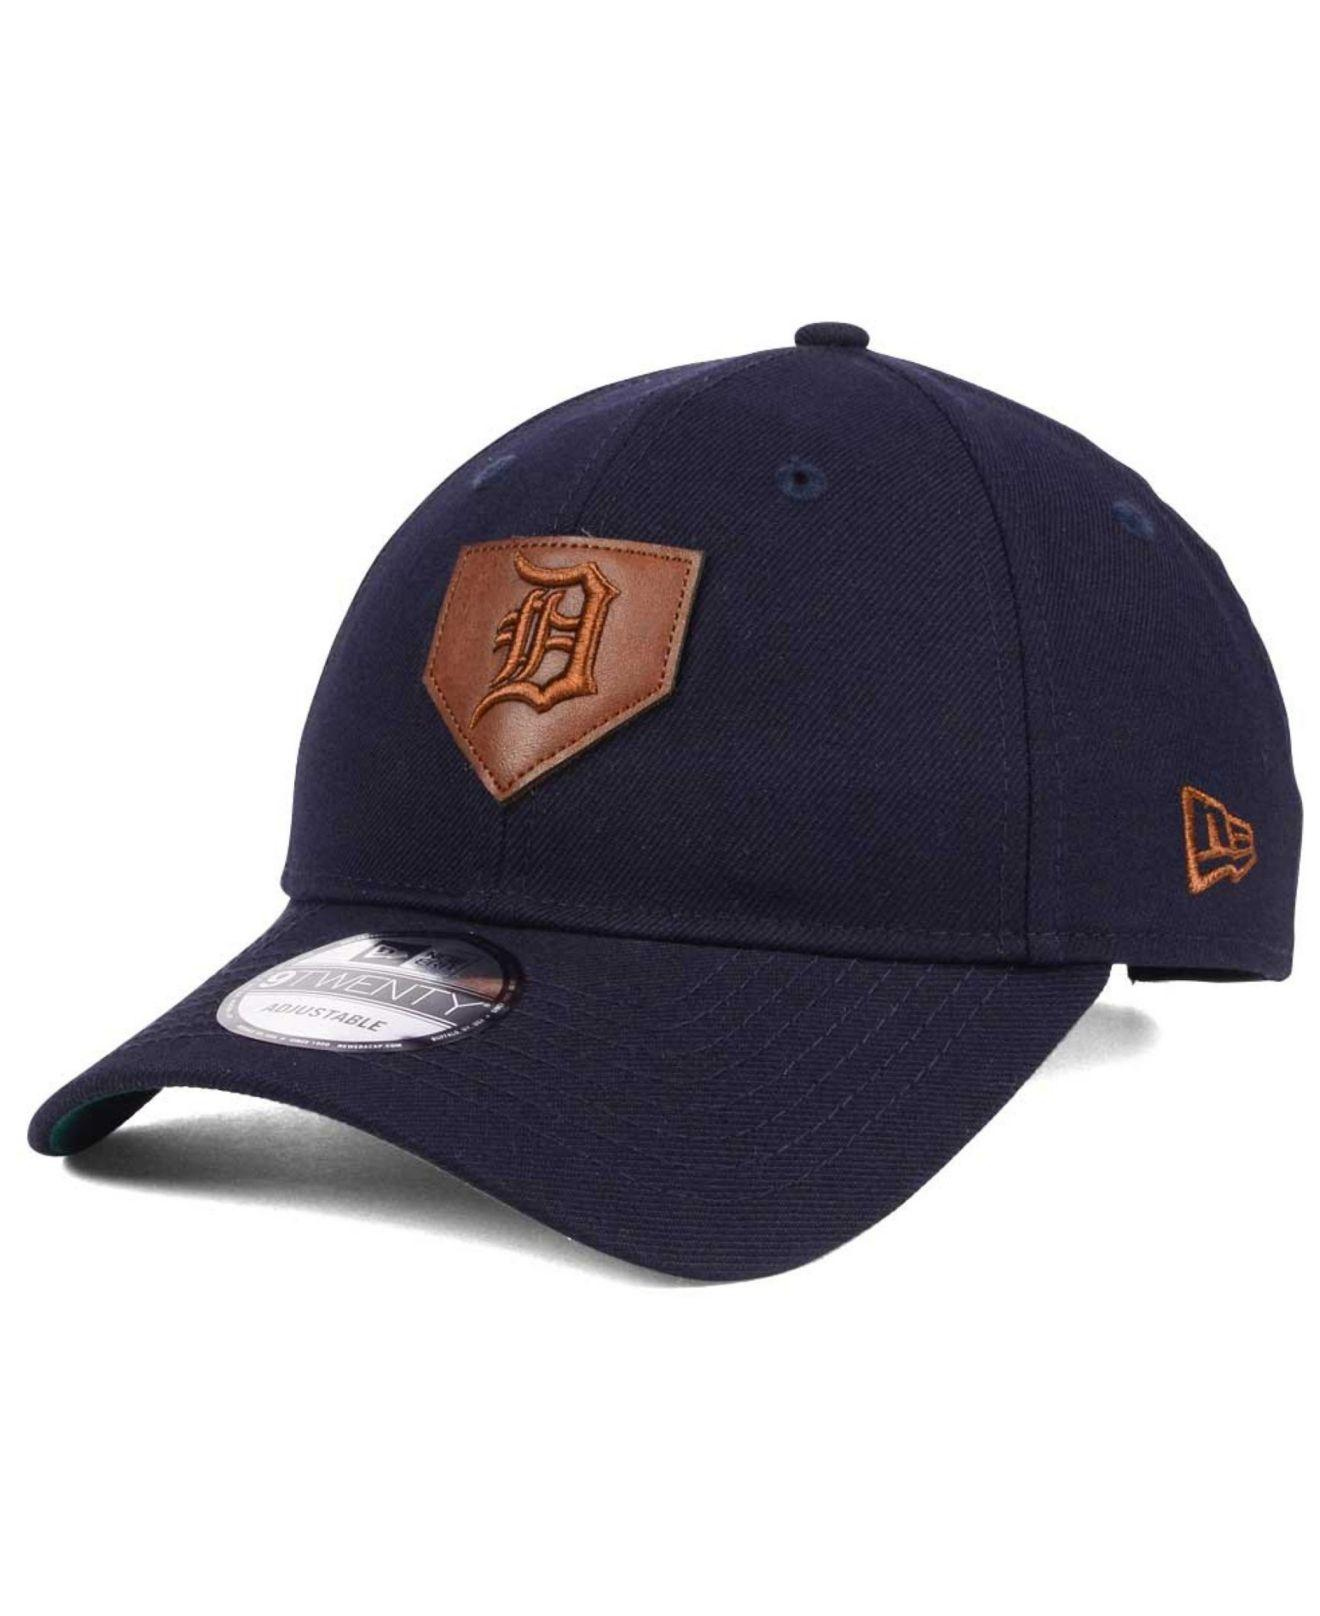 2001eff42d4f ... yankees hat id0218new era cappellini con visierasito di d376e 68fb4   best price lyst ktz the plate 9twenty cap in blue for men 747f6 4c3e5